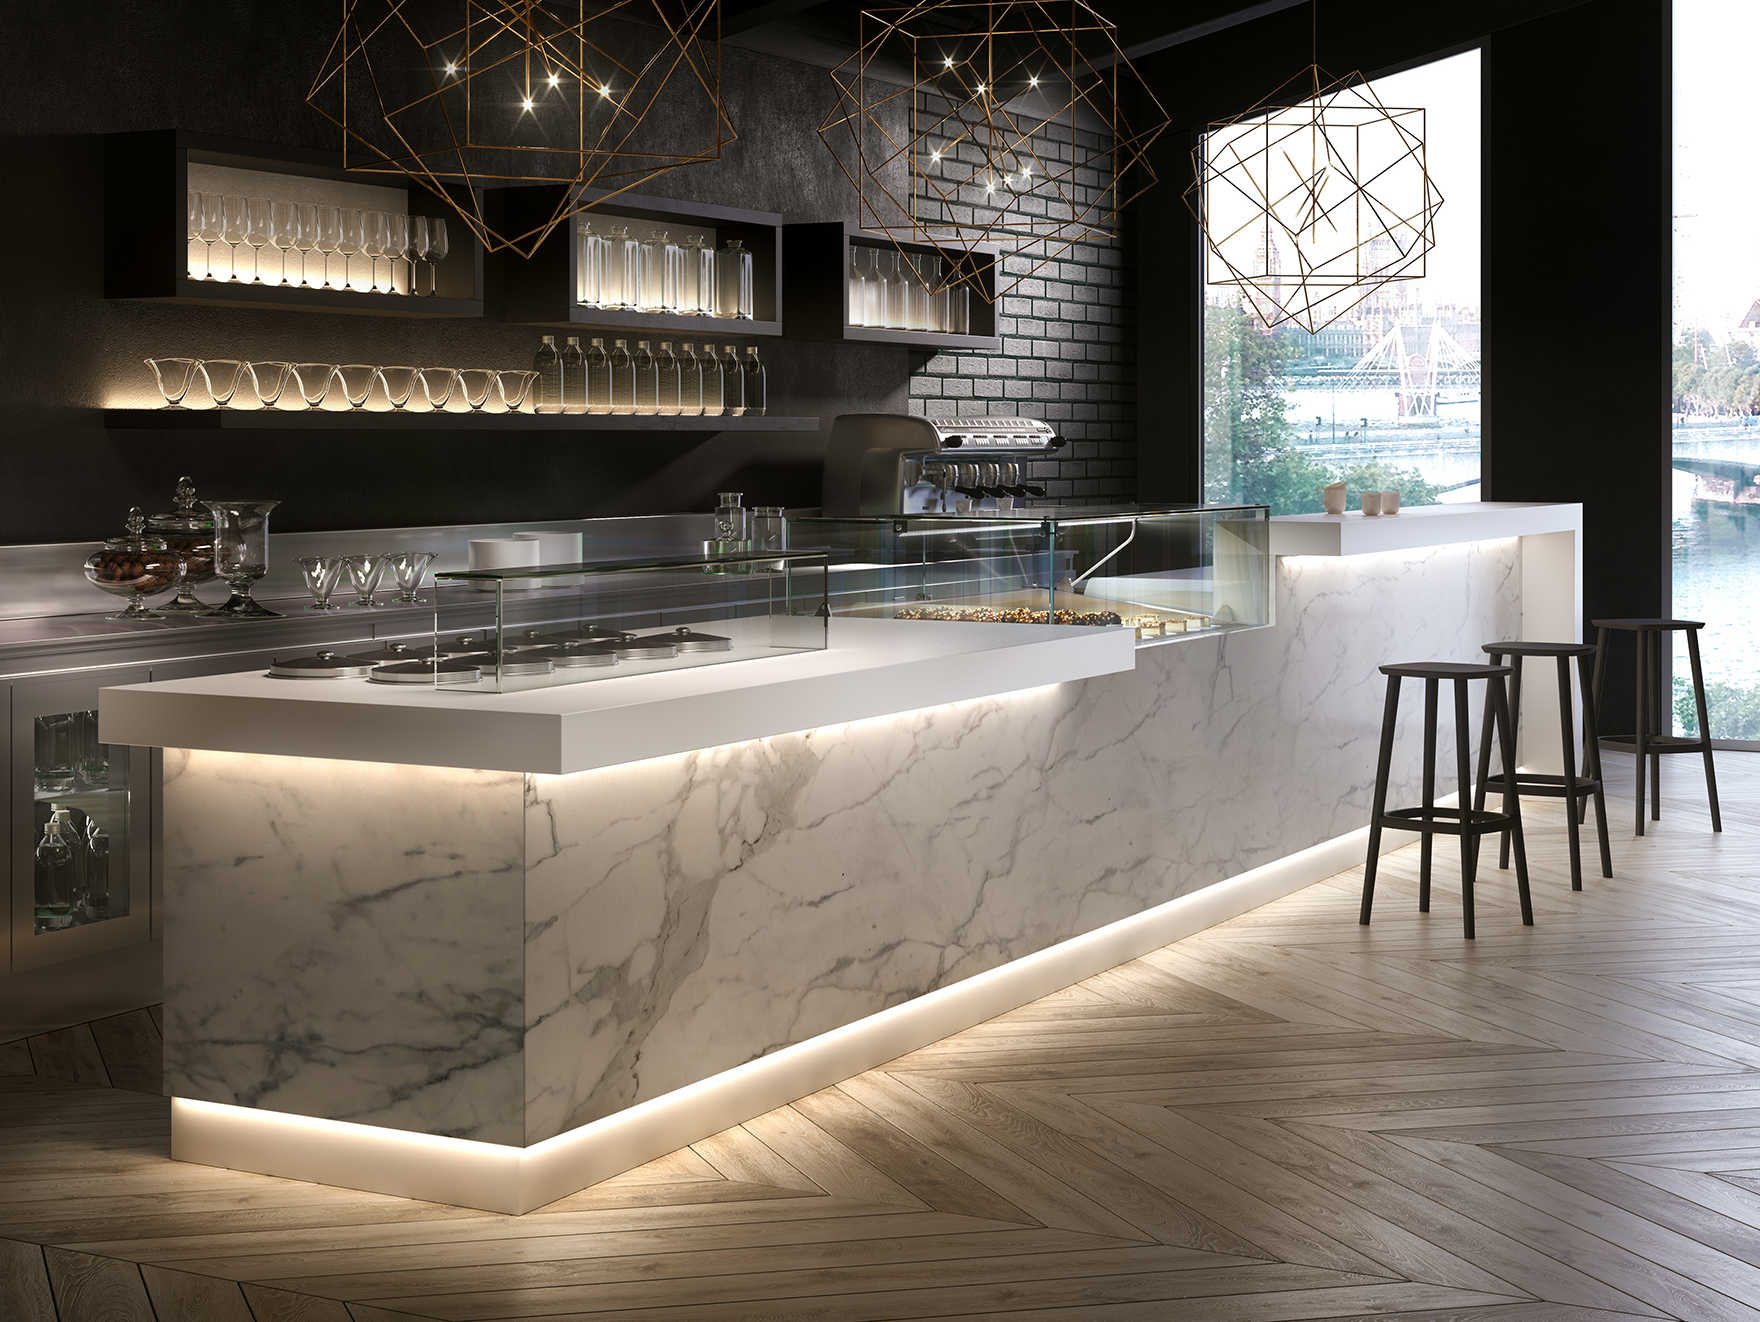 Super Banco bar con modulo self-service serie Business bar | dbanchibar OG13